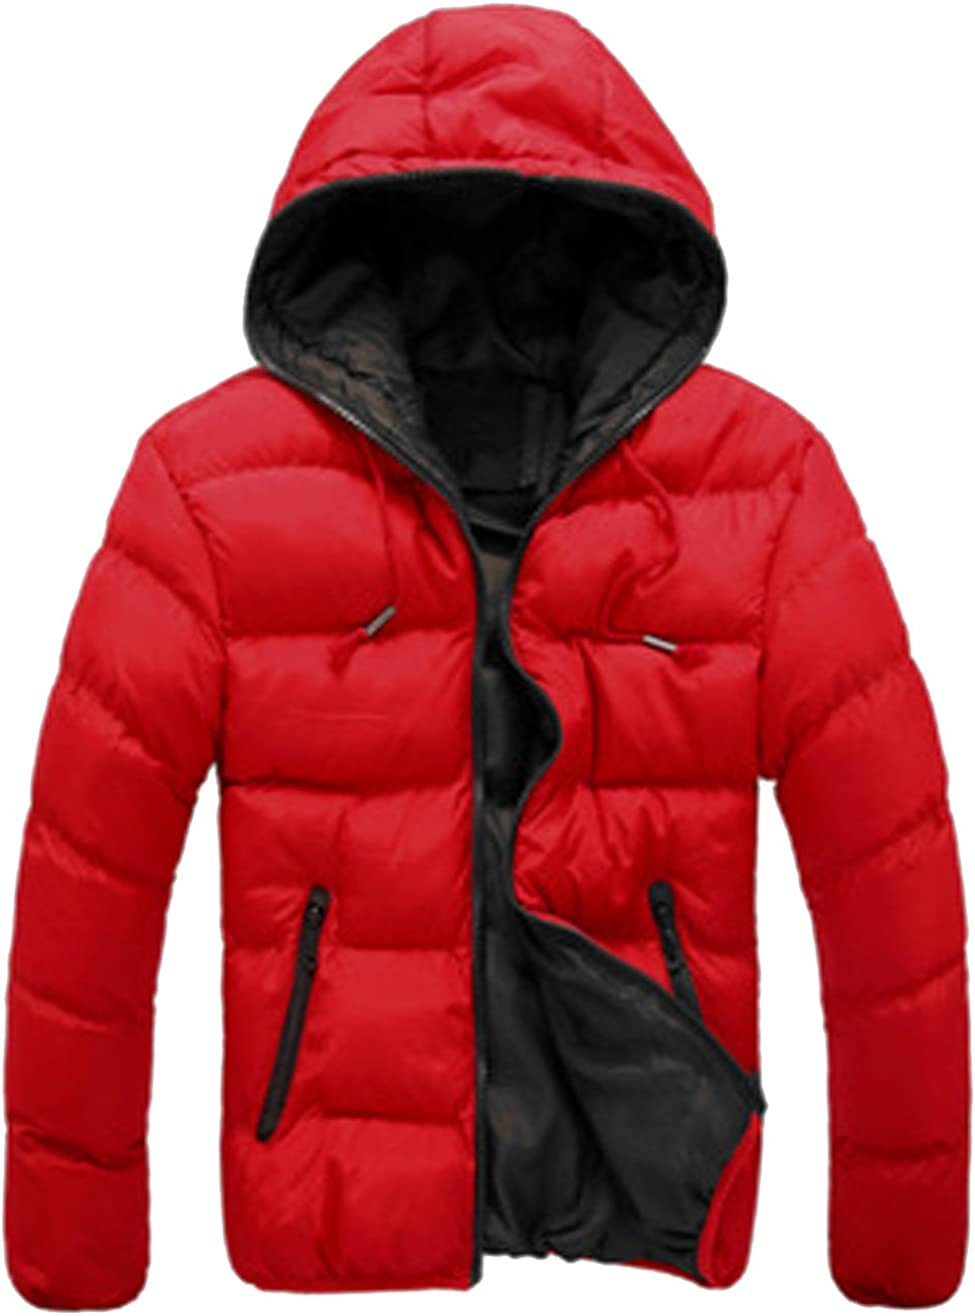 S/&S-Men Warm Winter Candy Colors Contrast Lining Thicken Warm Puffer Compressible Jackets